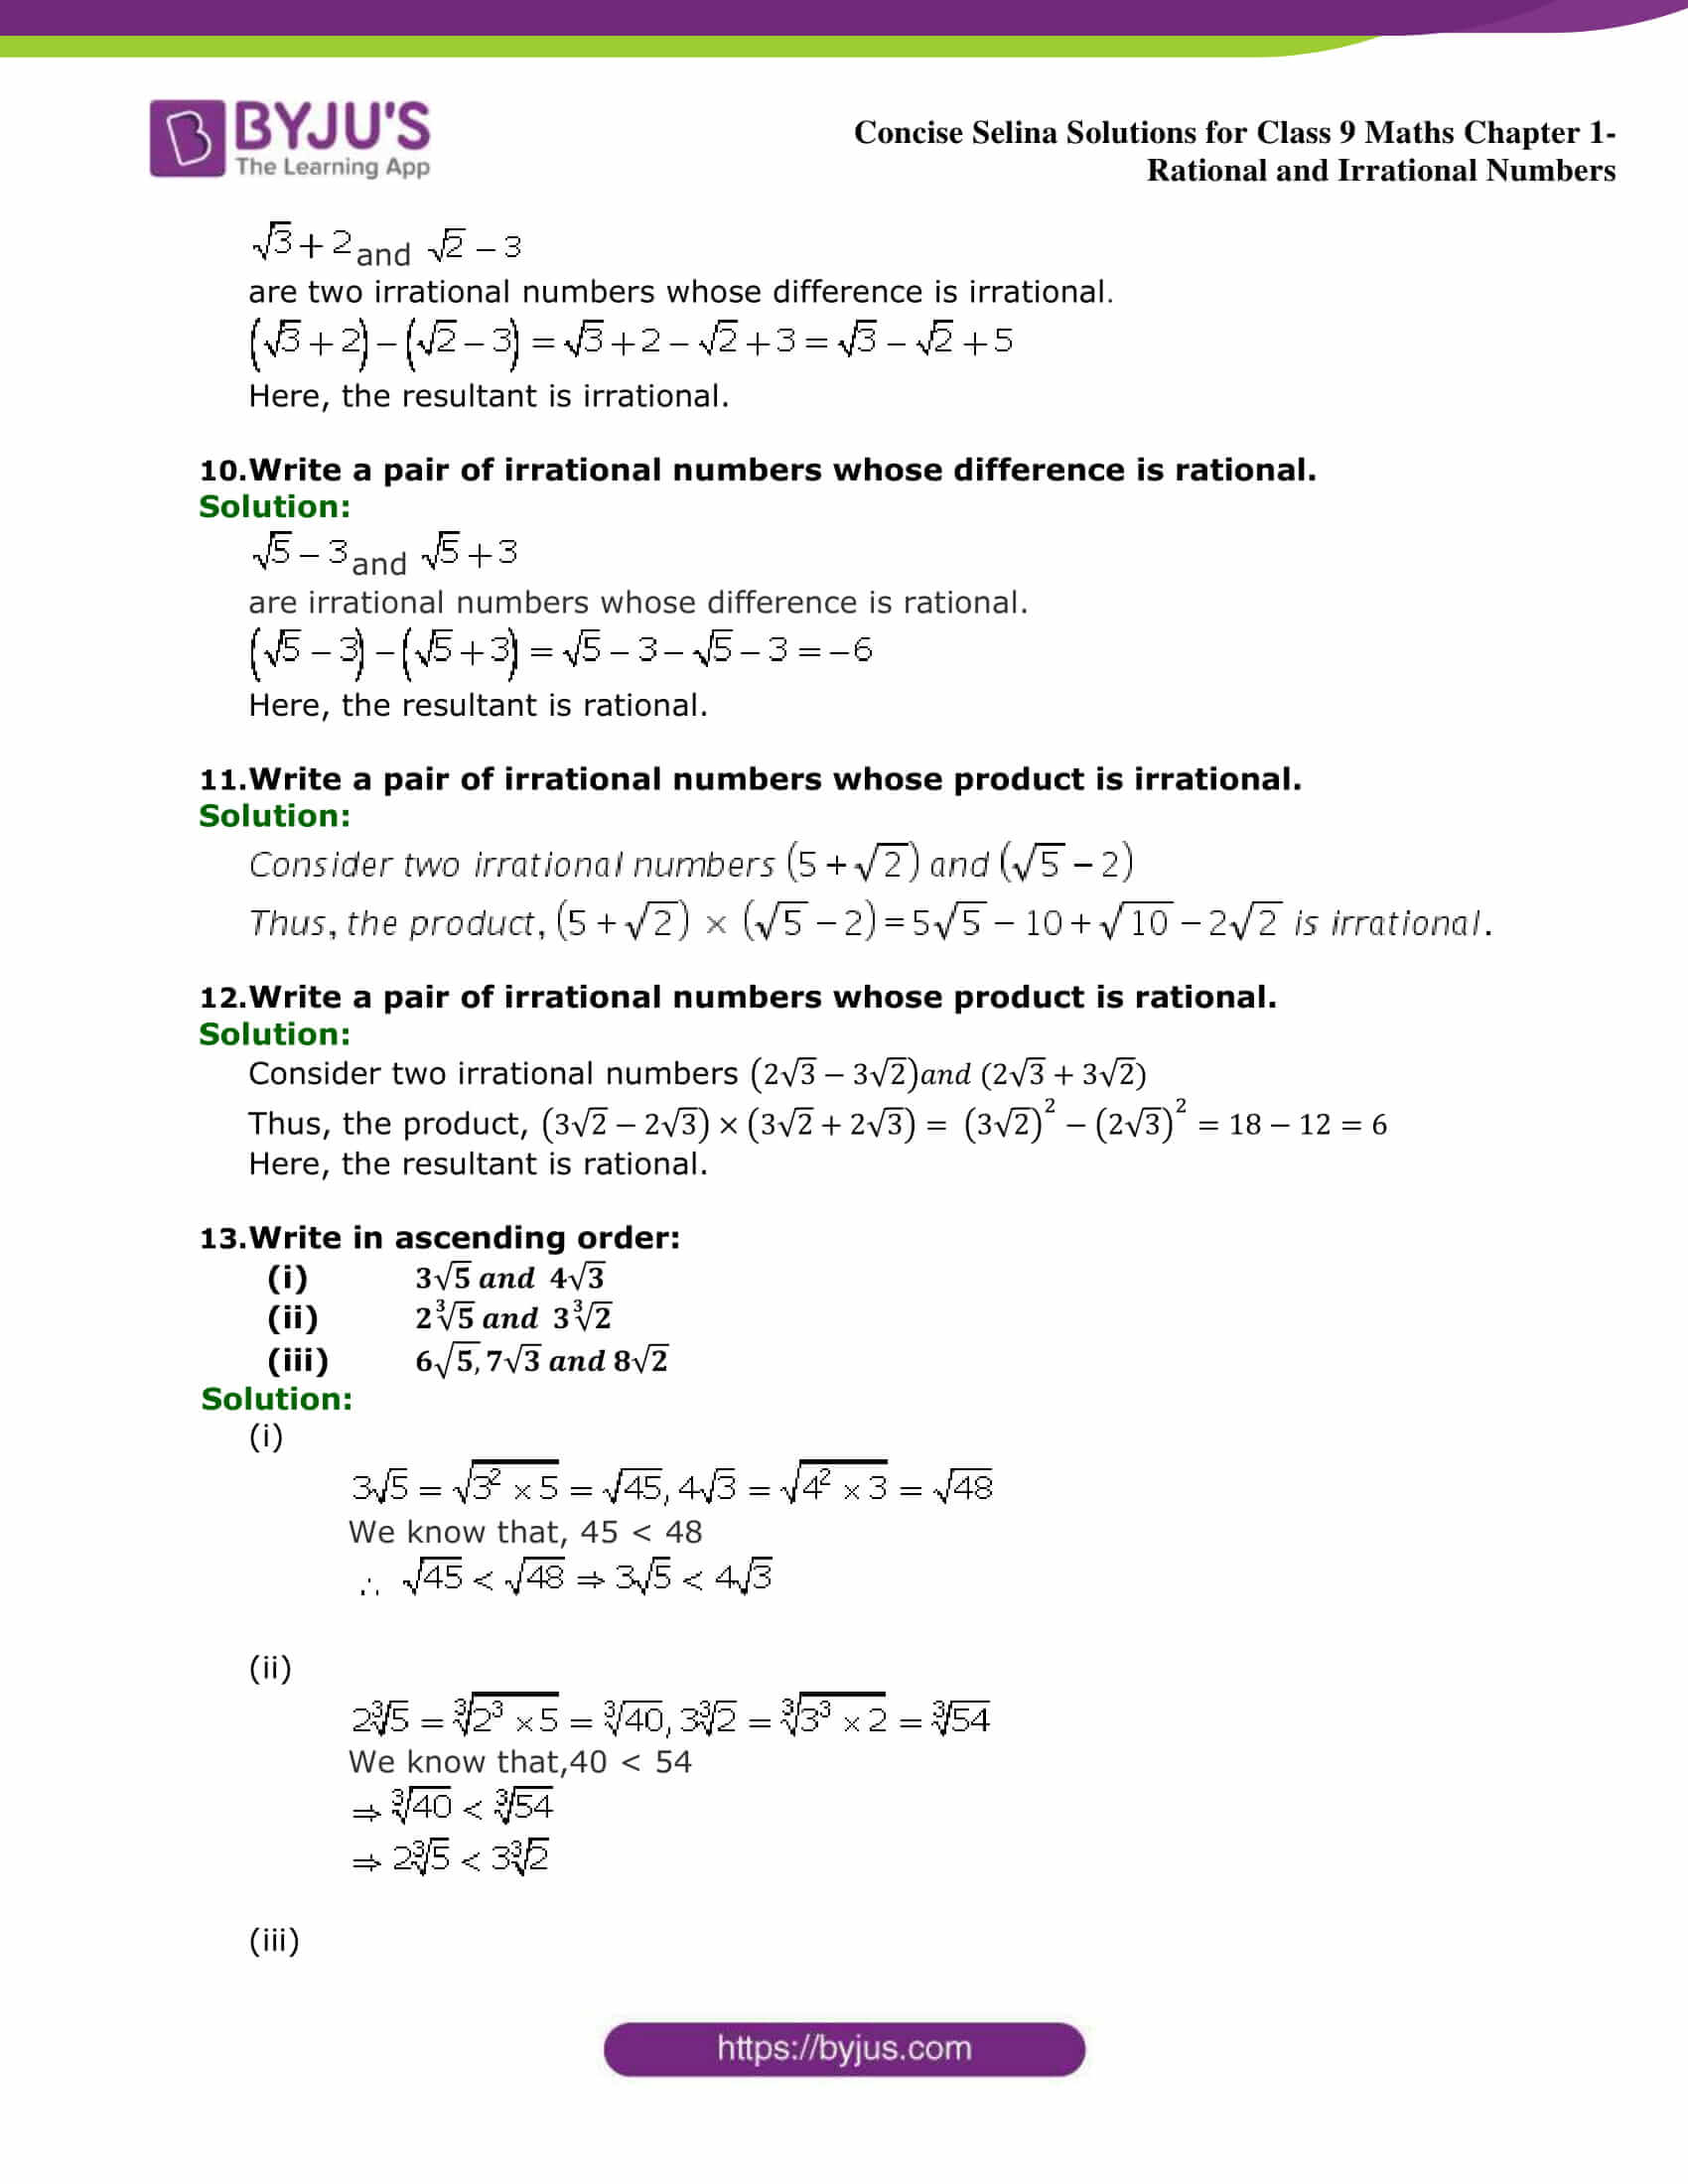 Selina Solutions Class 9 Maths Chapter 1 Rational And Irrational Numbers part 13